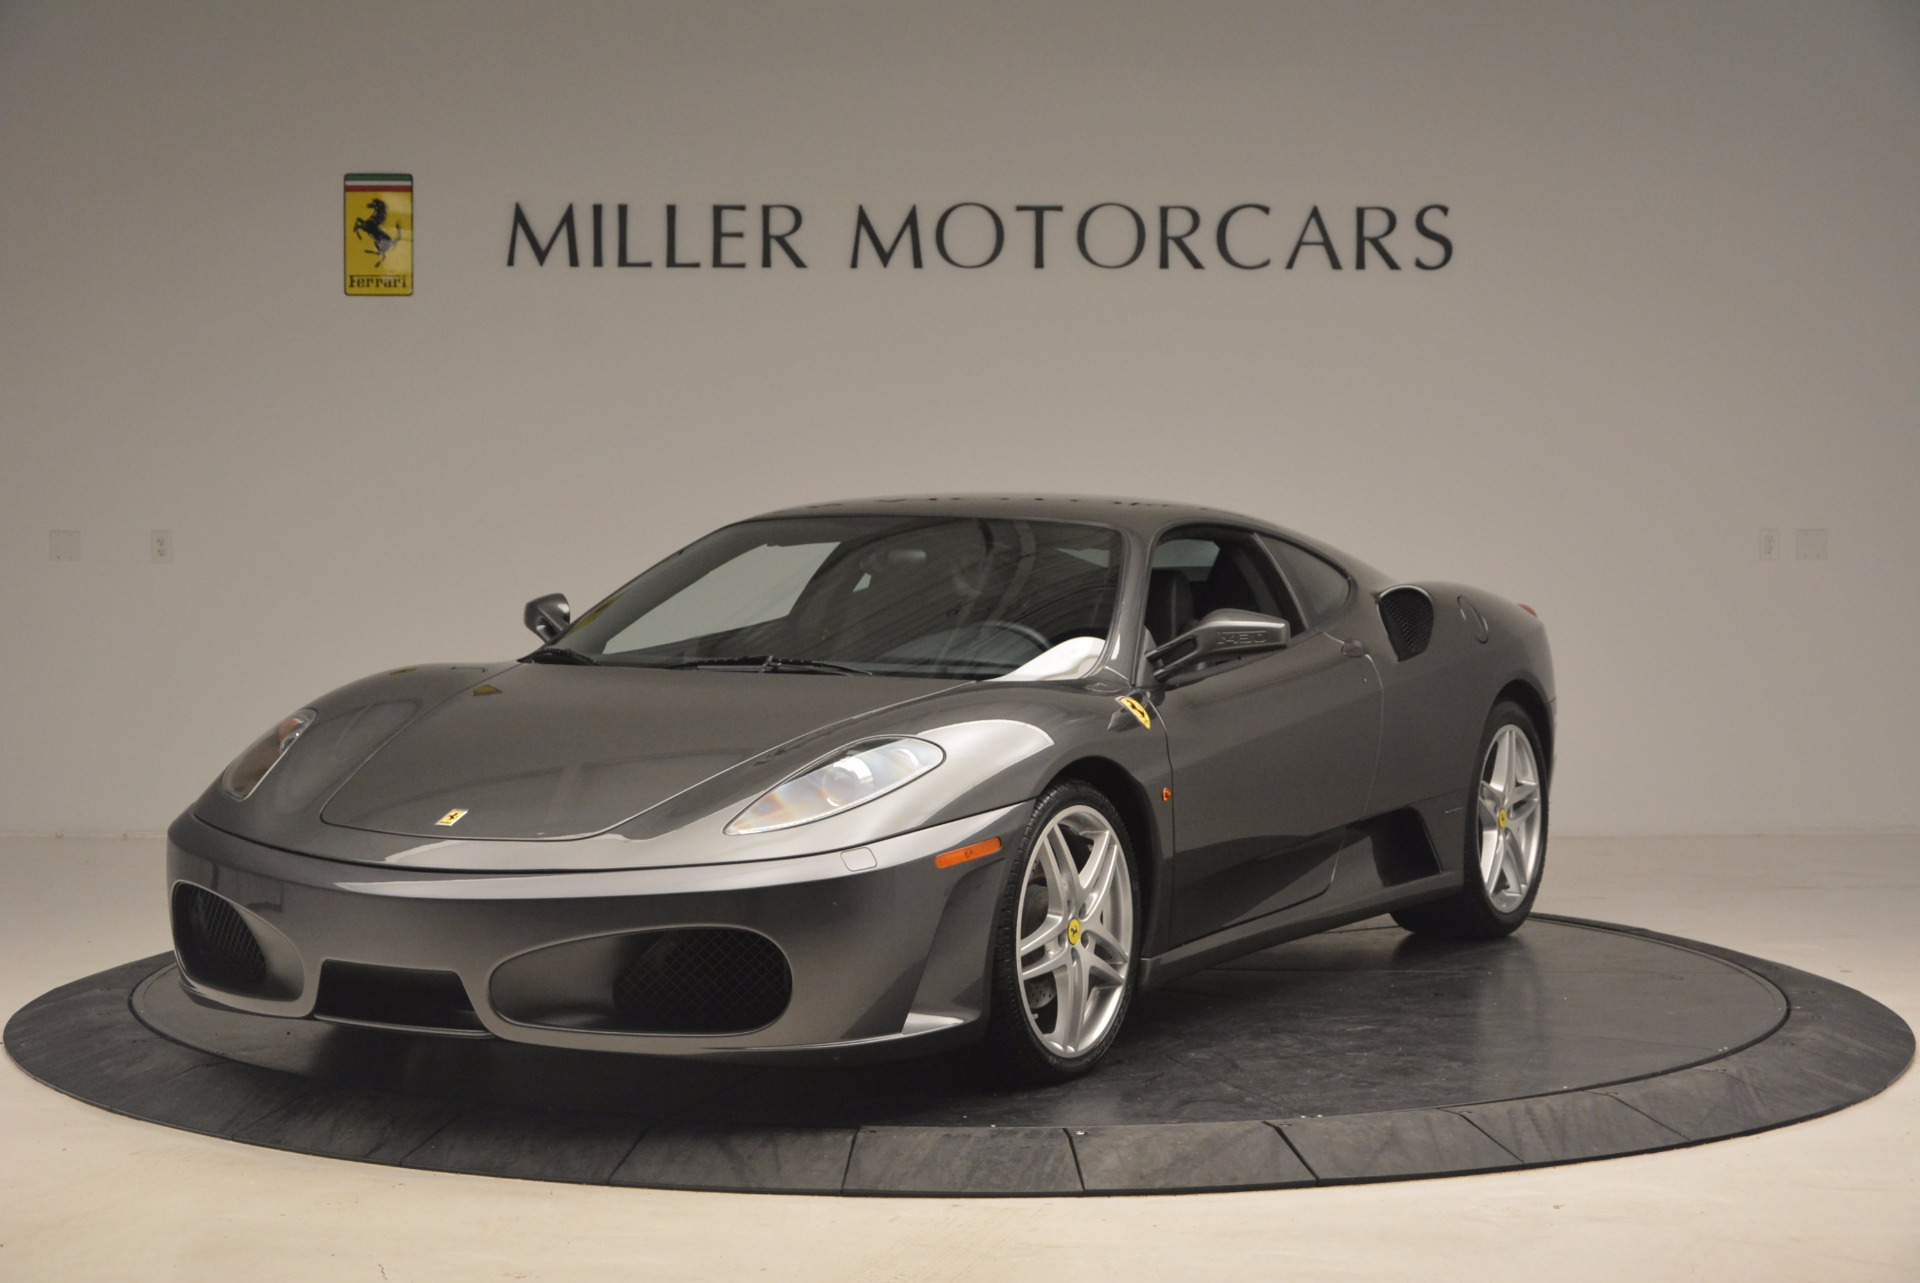 Used 2005 Ferrari F430 6-Speed Manual for sale Sold at Rolls-Royce Motor Cars Greenwich in Greenwich CT 06830 1